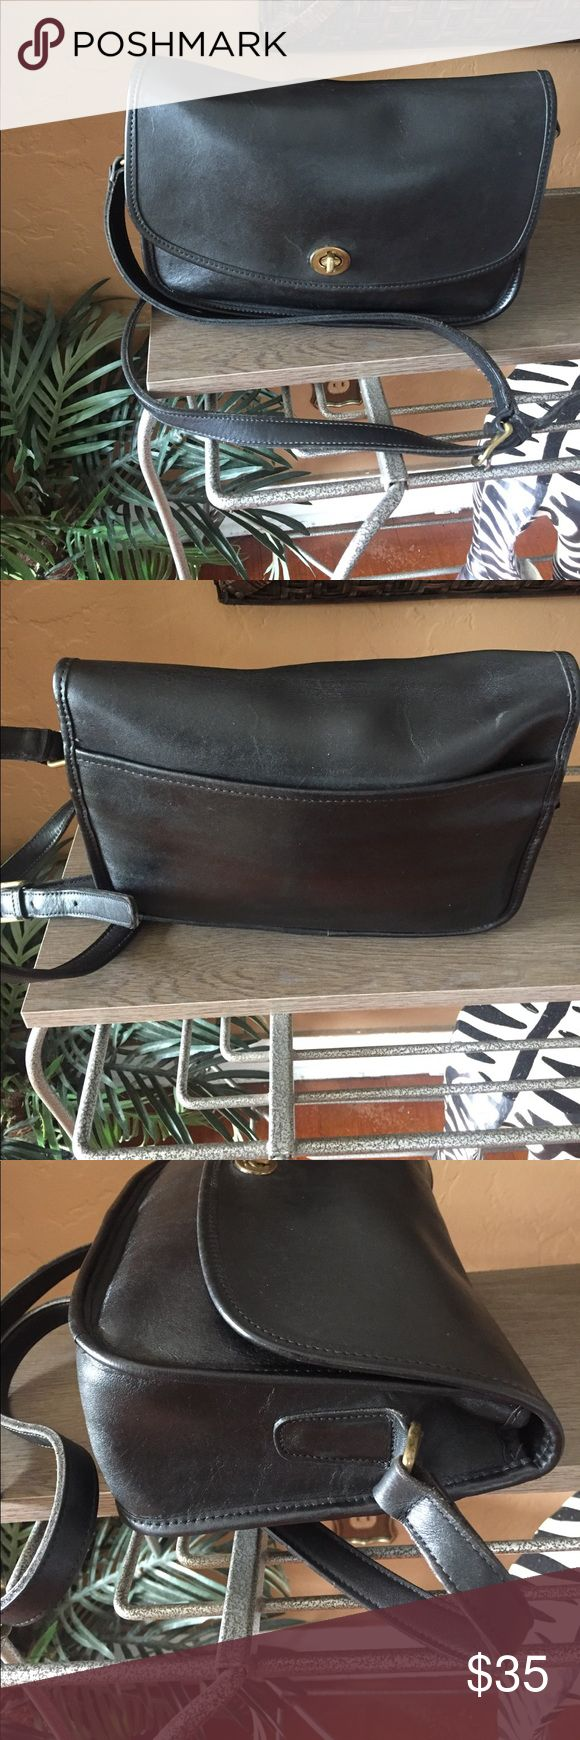 Coach Vintage Handbag A black leather vintage crossbody handbag that measure about 7 ins from top to bottom and about 11 ins from side to side and adjustable shoulder strap creed numbers are B4H-9790 made in the USA in good used condition. Coach Bags Crossbody Bags